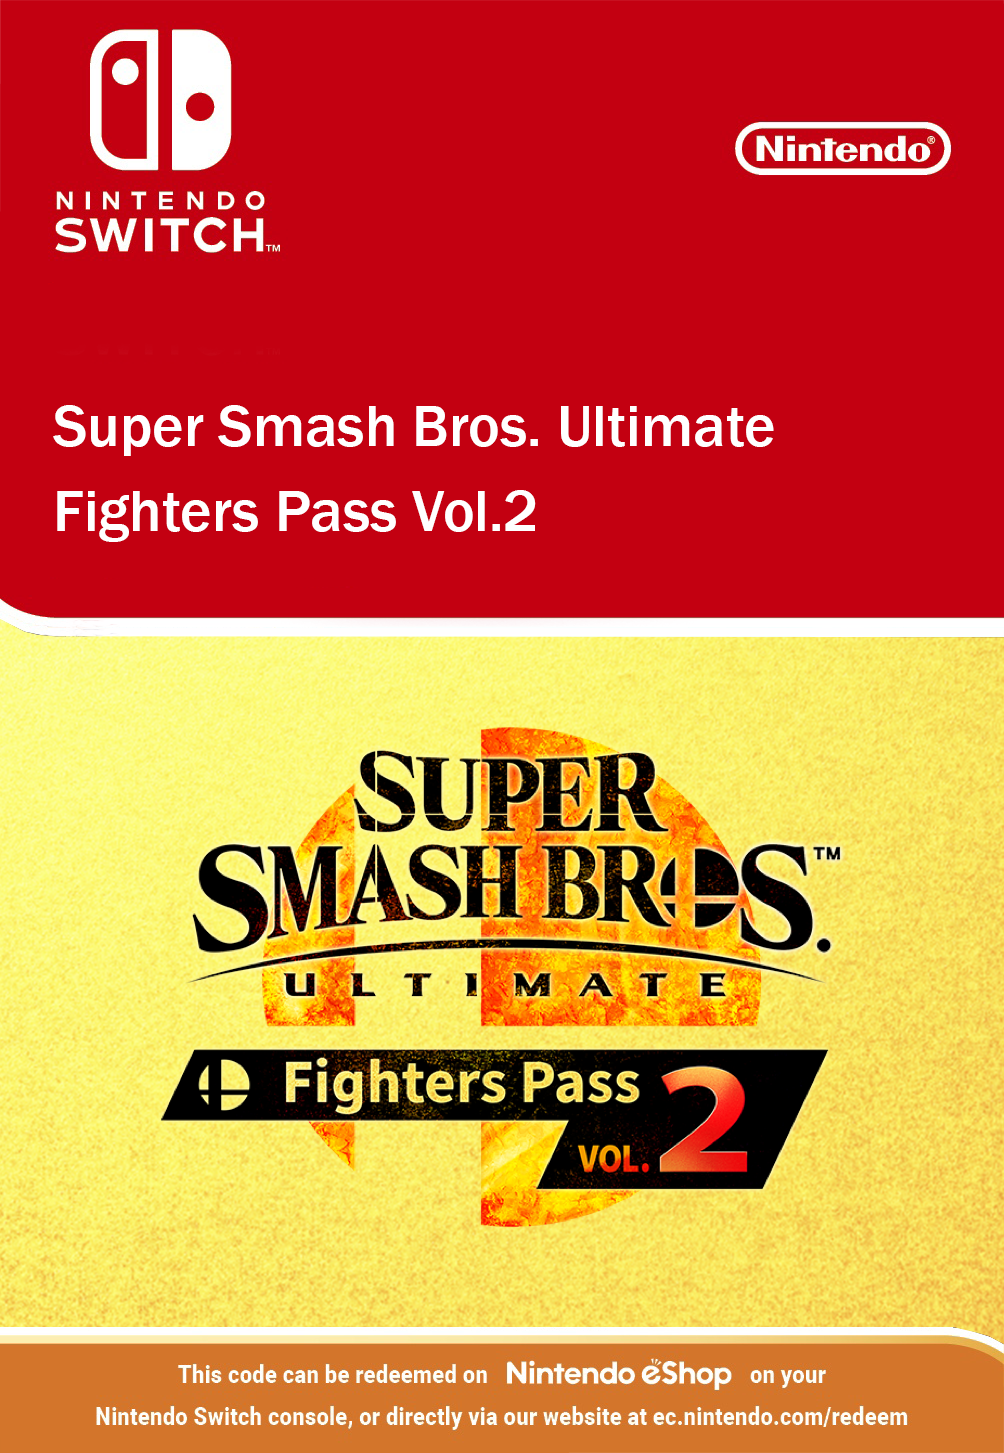 Super Smash Bros Ultimate - Fighters Pass Vol.2 Nintendo Switch